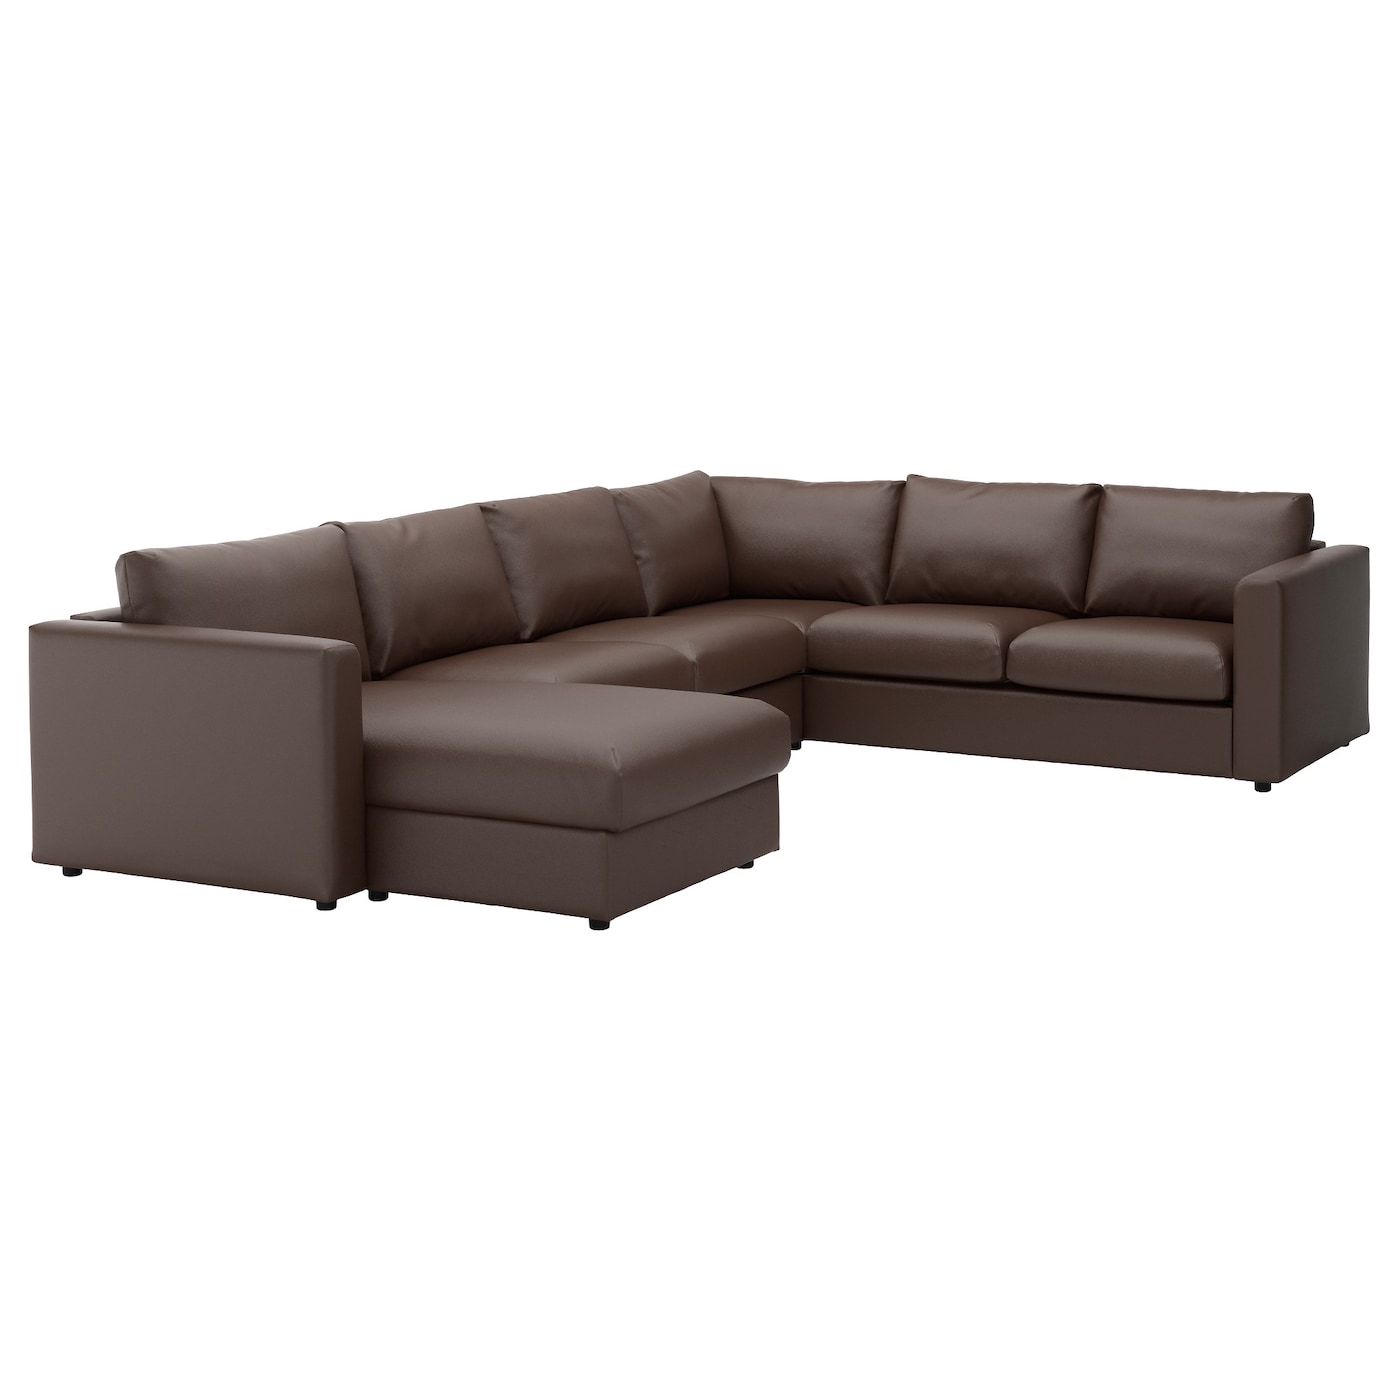 Vimle corner sofa 5 seat with chaise longue farsta dark for Corner loveseats